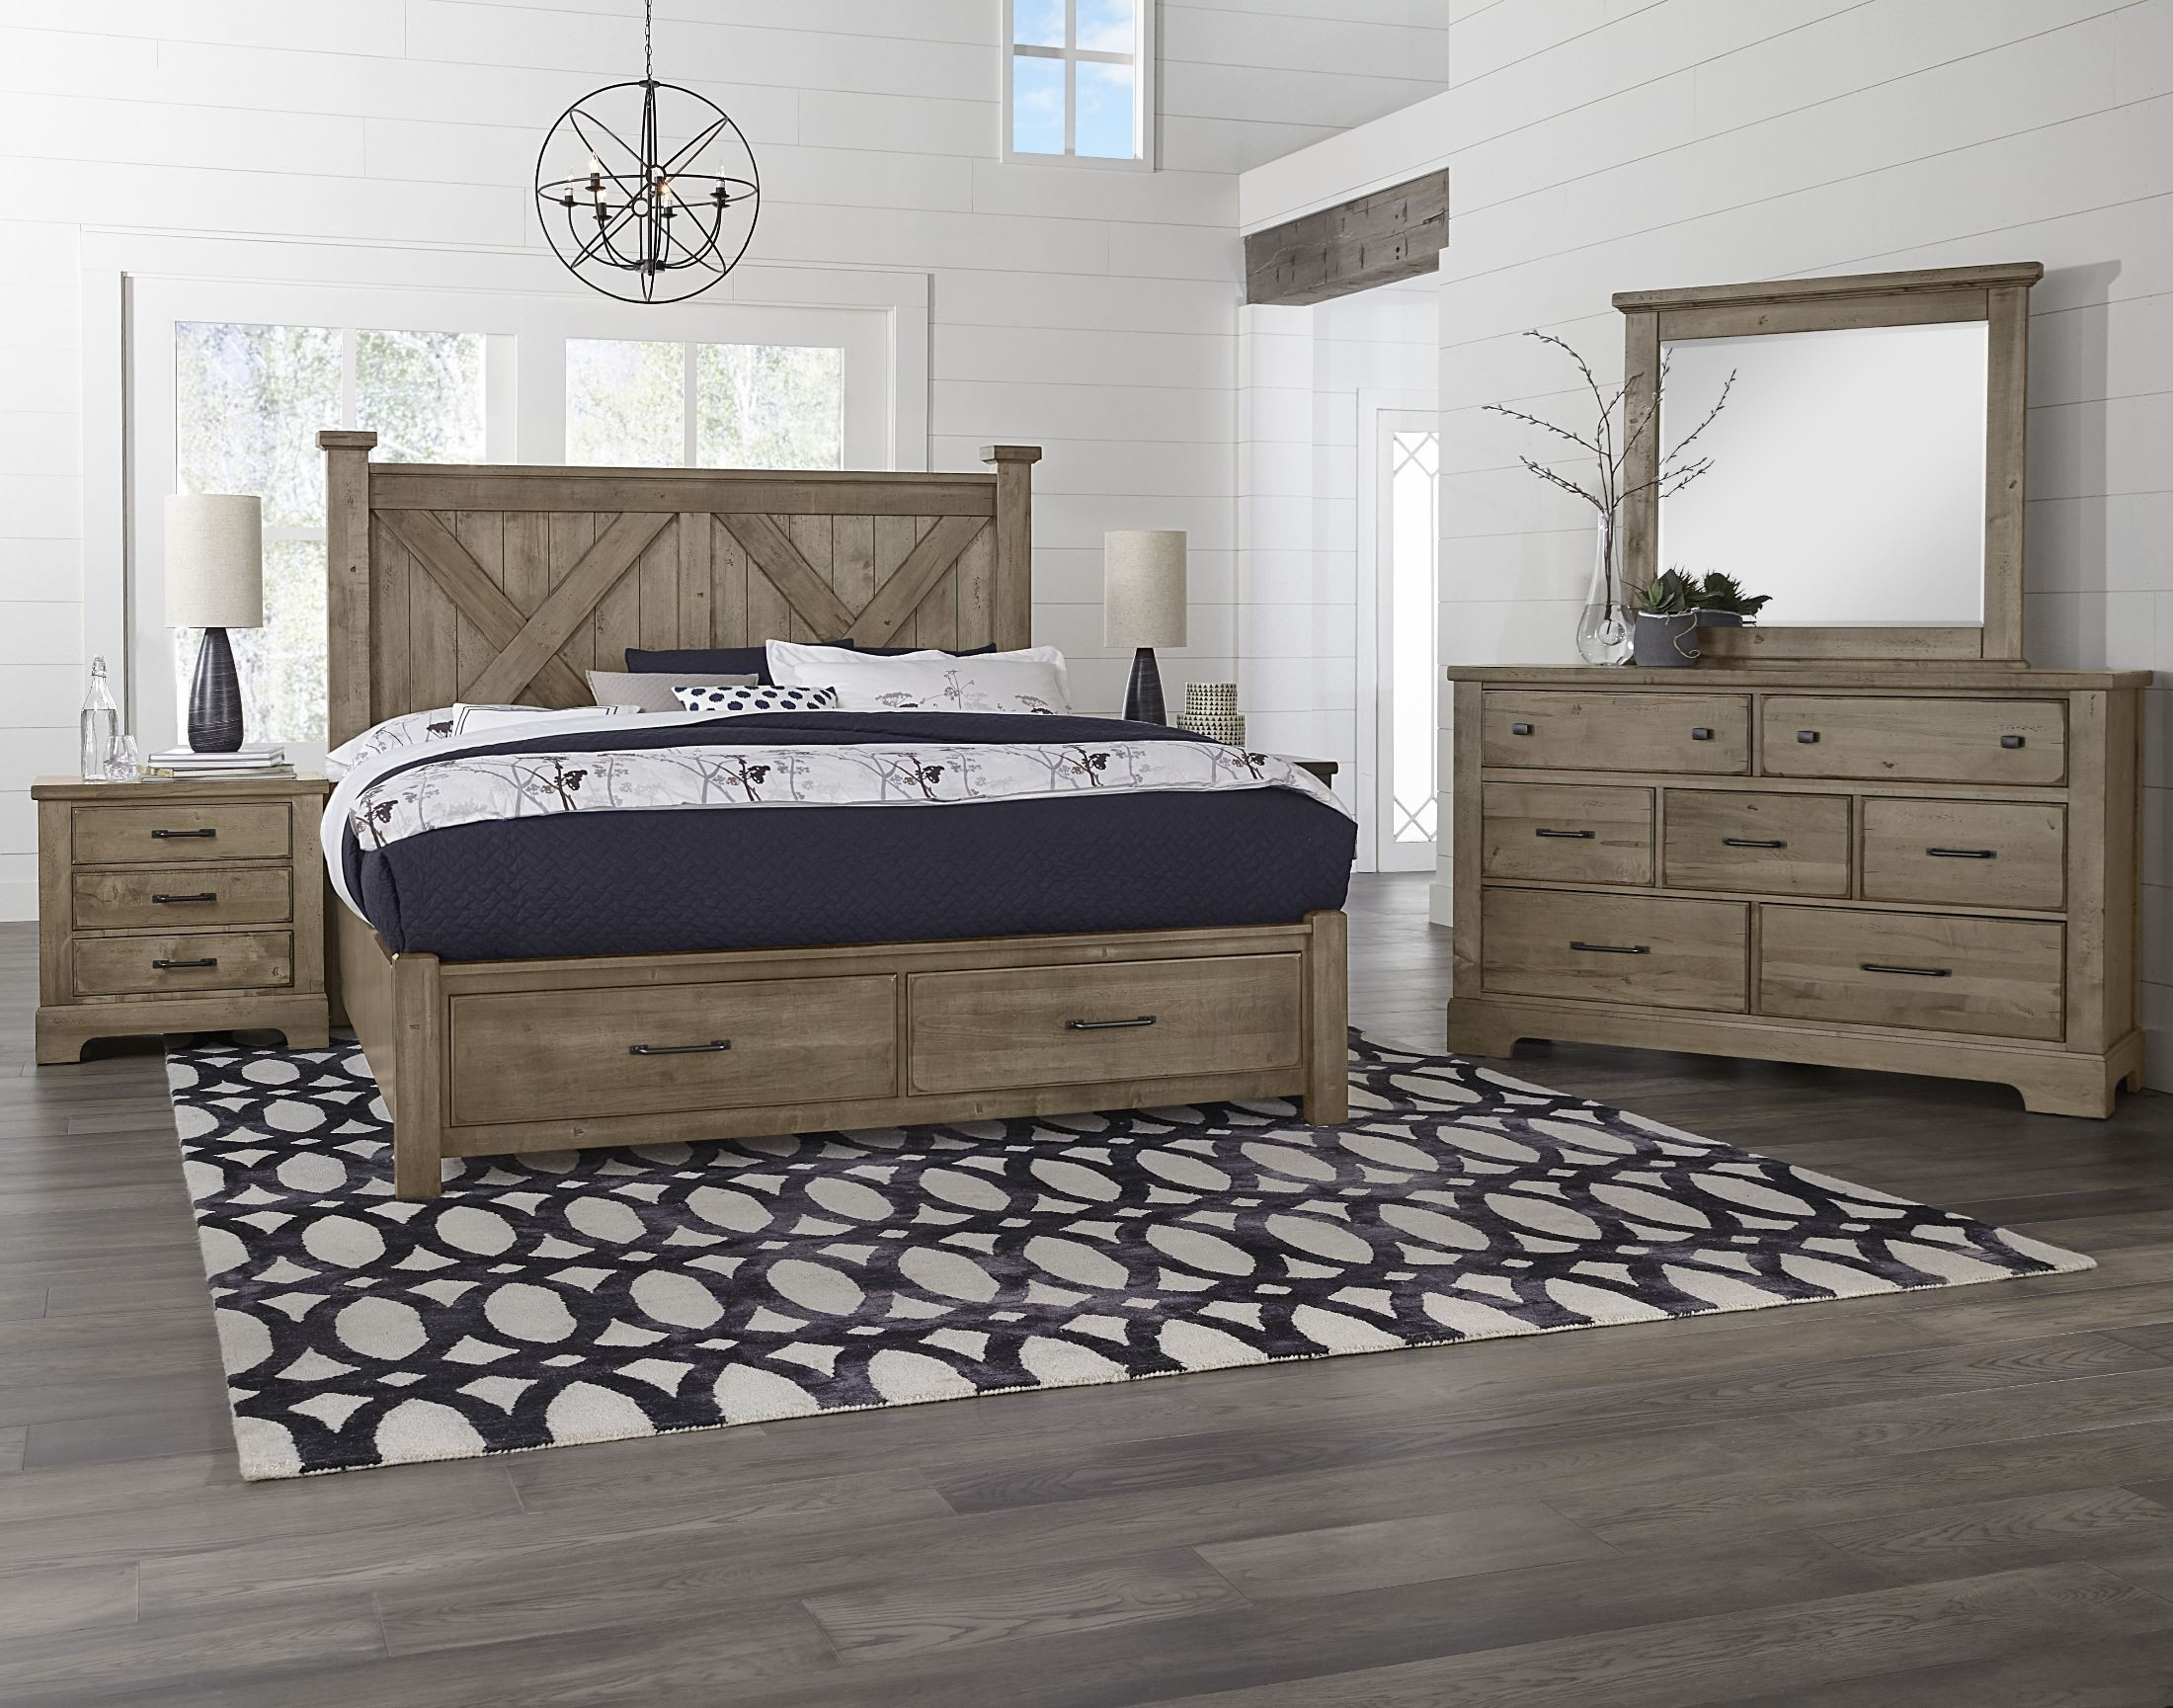 Cool Rustic Stone Grey X Style Storage Bedroom Set from ...